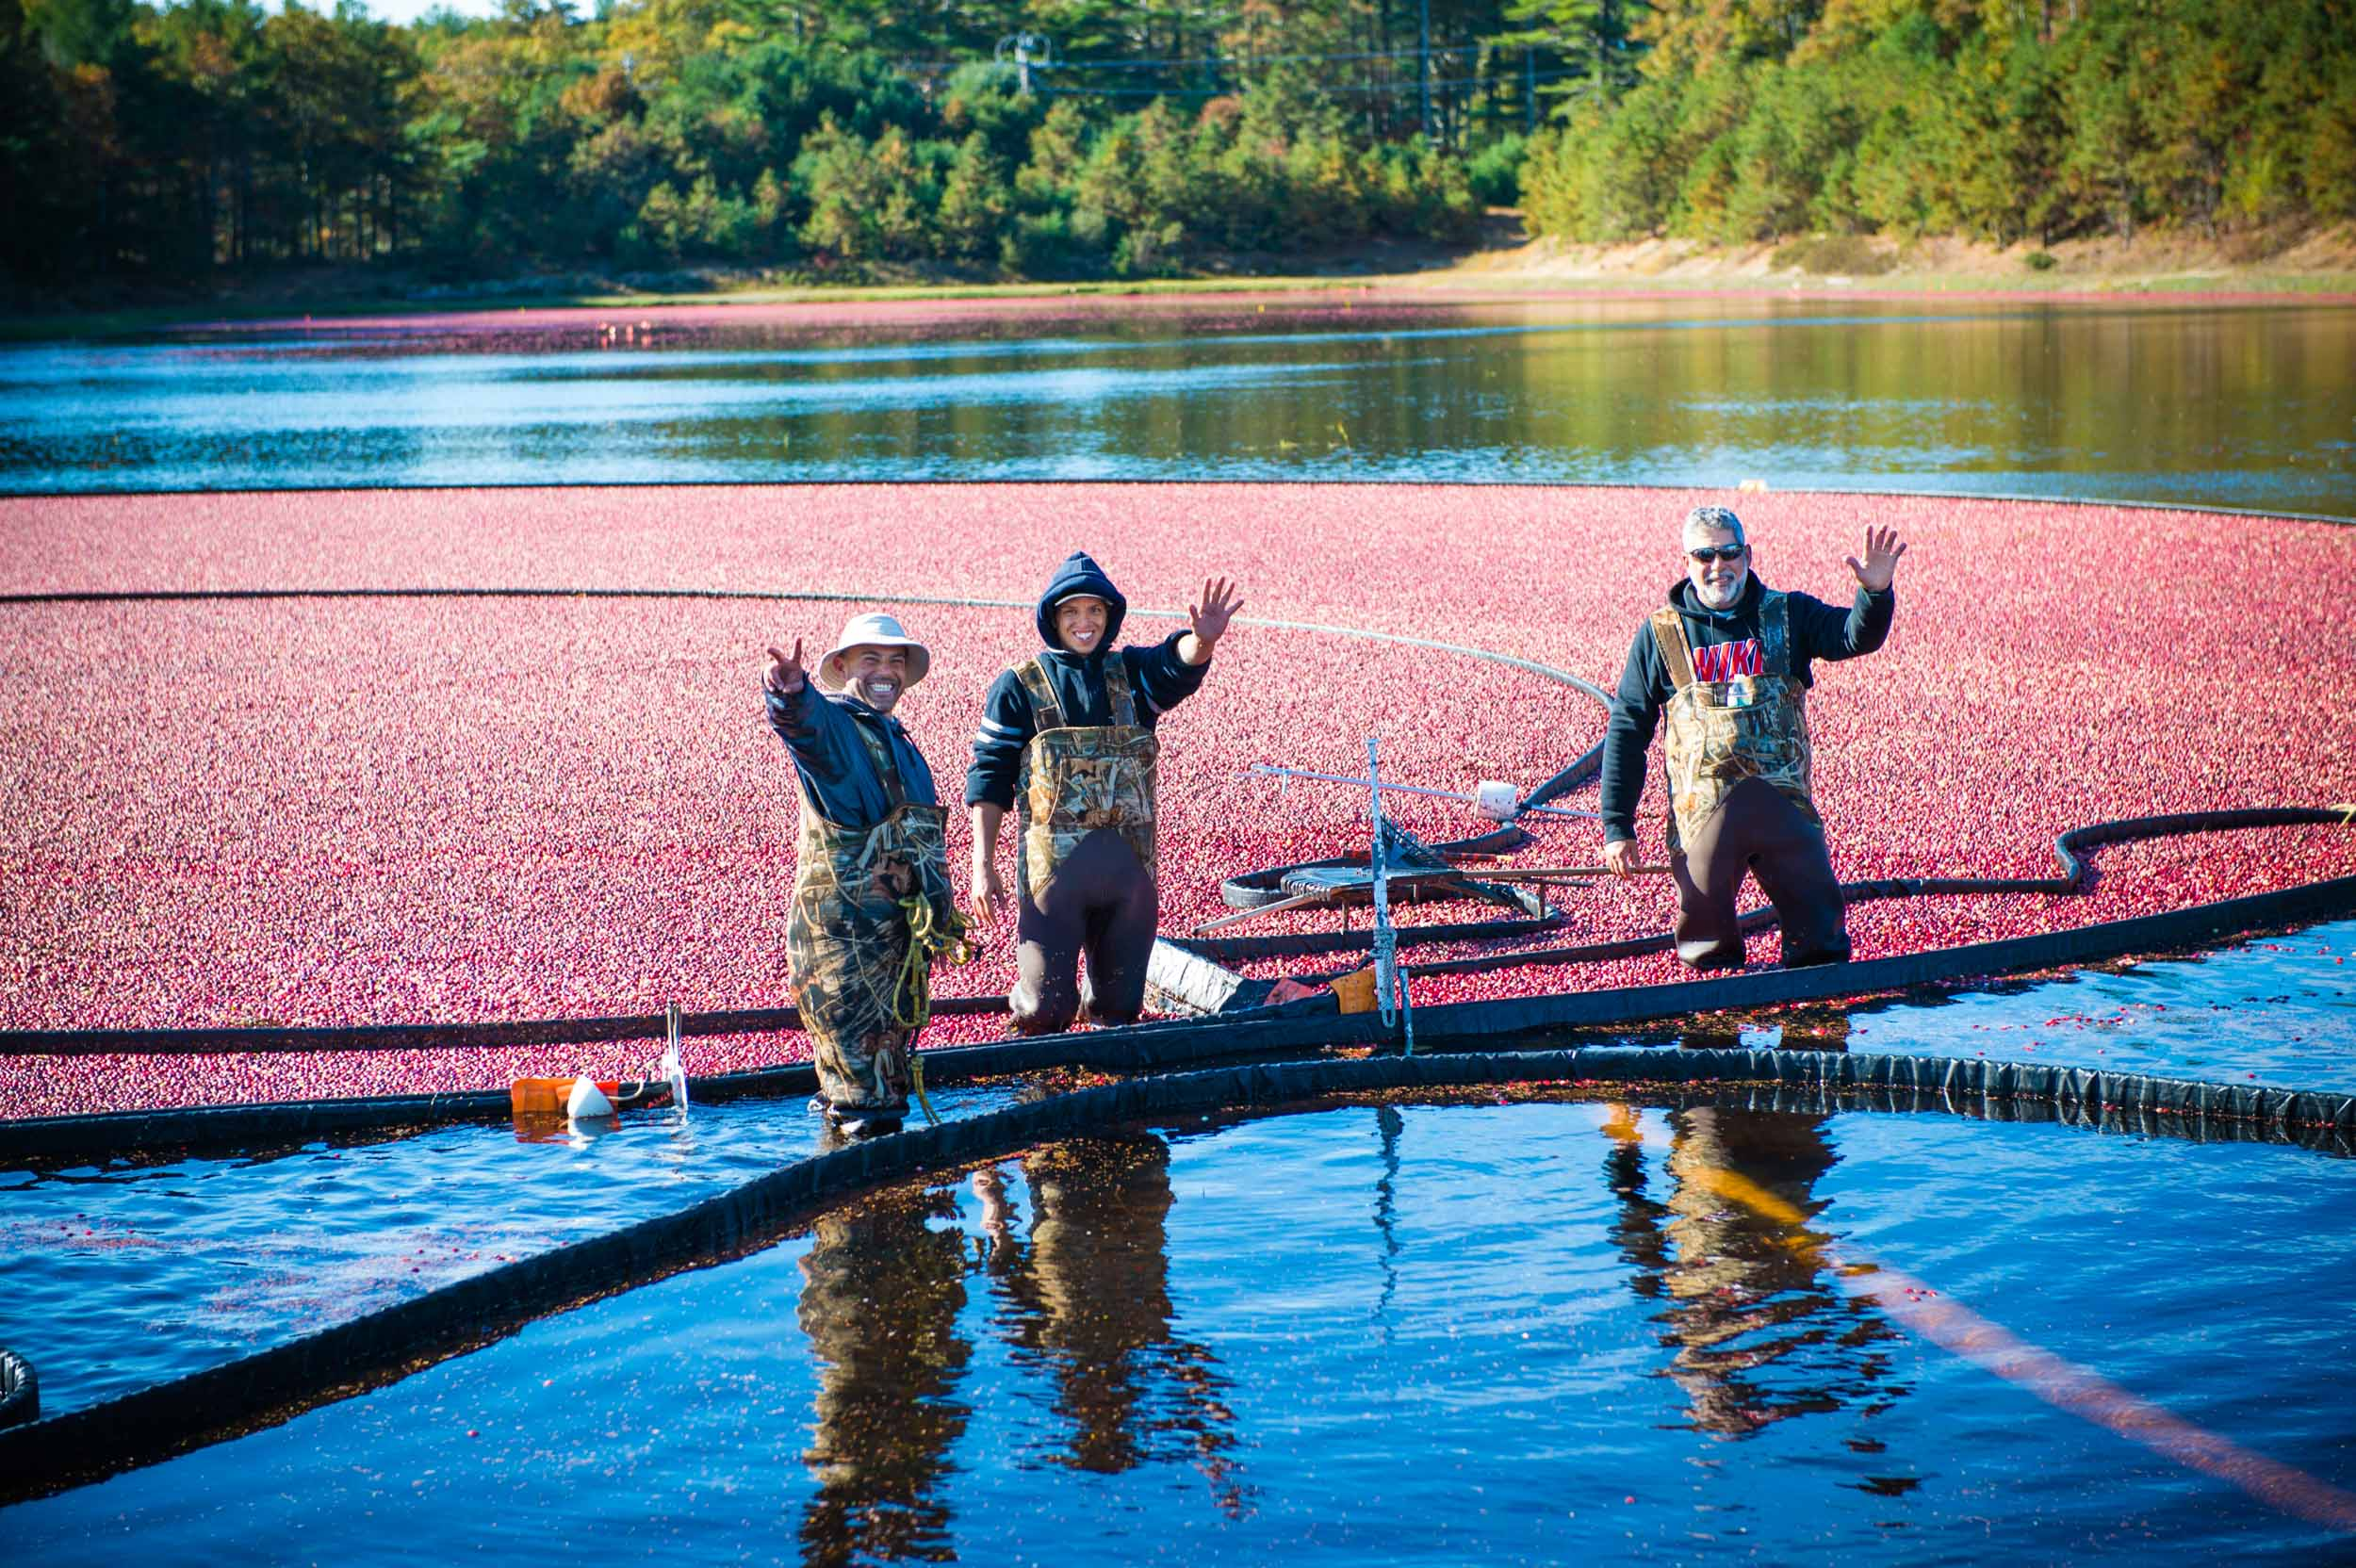 Maura Wayman Photography, Photography, Corporate Photography, stock, stock images, Massachusetts, Boston, Metro West, Wellesley, Cranberries, berries, berry, cranberry, red, red berries, farmer, harvest, field, machine, farming machine, water, Cape Cod, cranberry harvest, fall, rake,  boom, three workers,